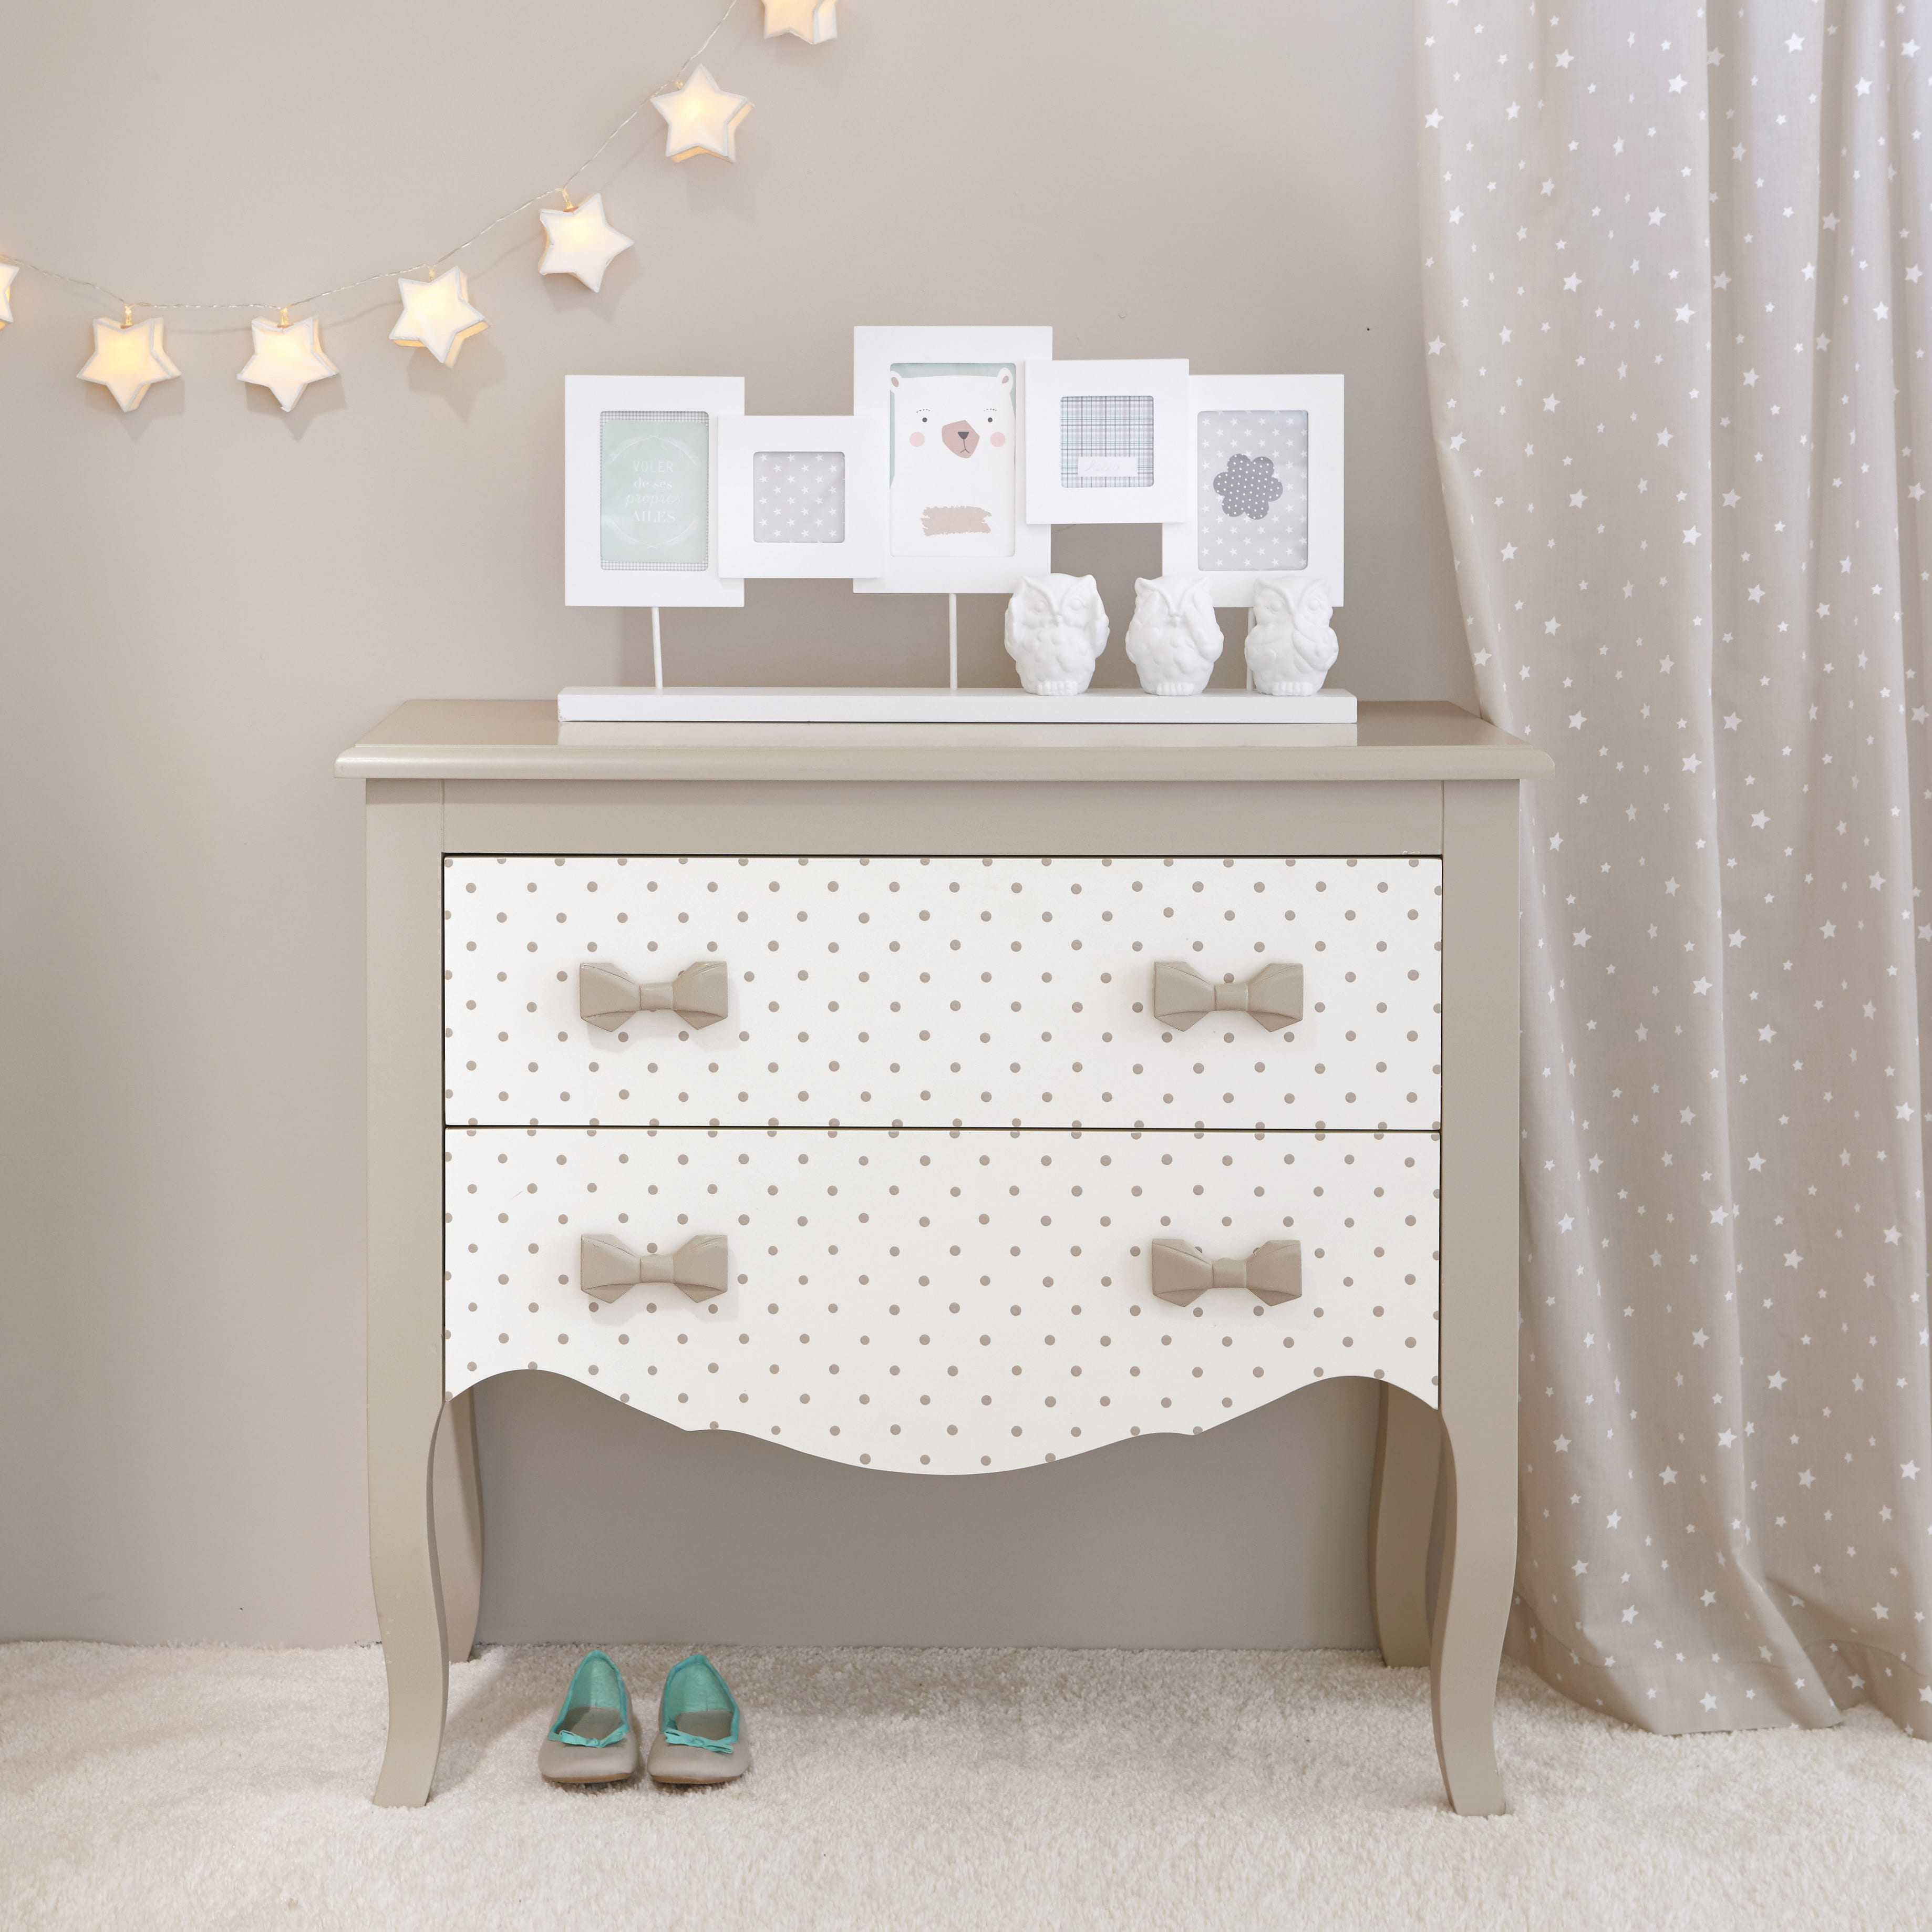 commode enfant en bois blanche taupe l 80 cm coquette maisons du monde baby rooms pinterest. Black Bedroom Furniture Sets. Home Design Ideas